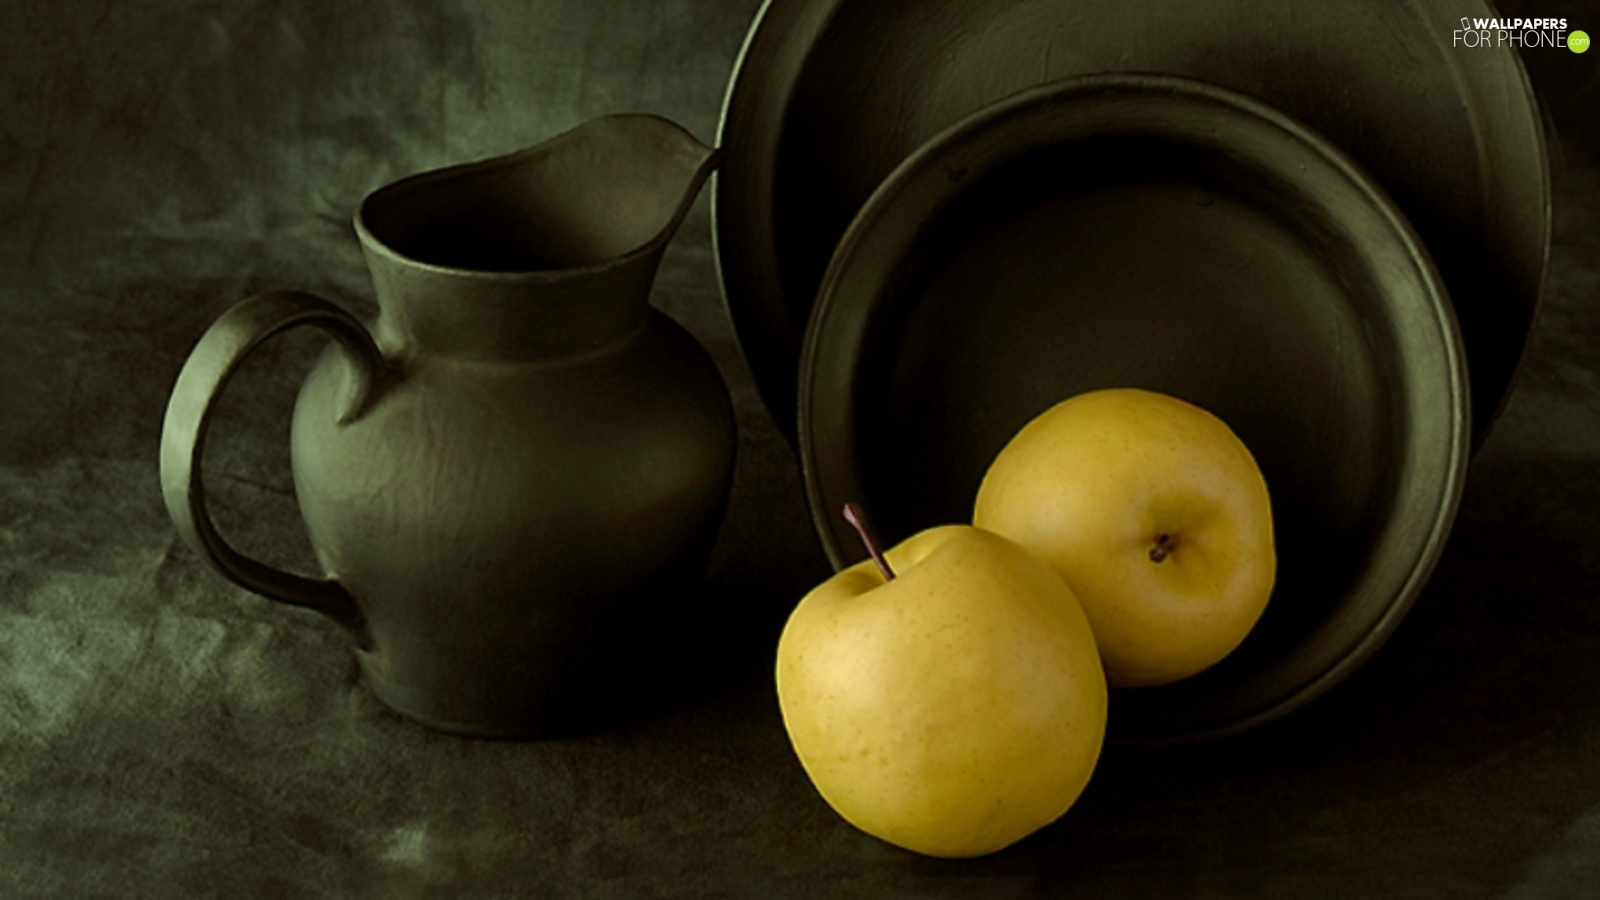 metal, Yellow, apples, dishes